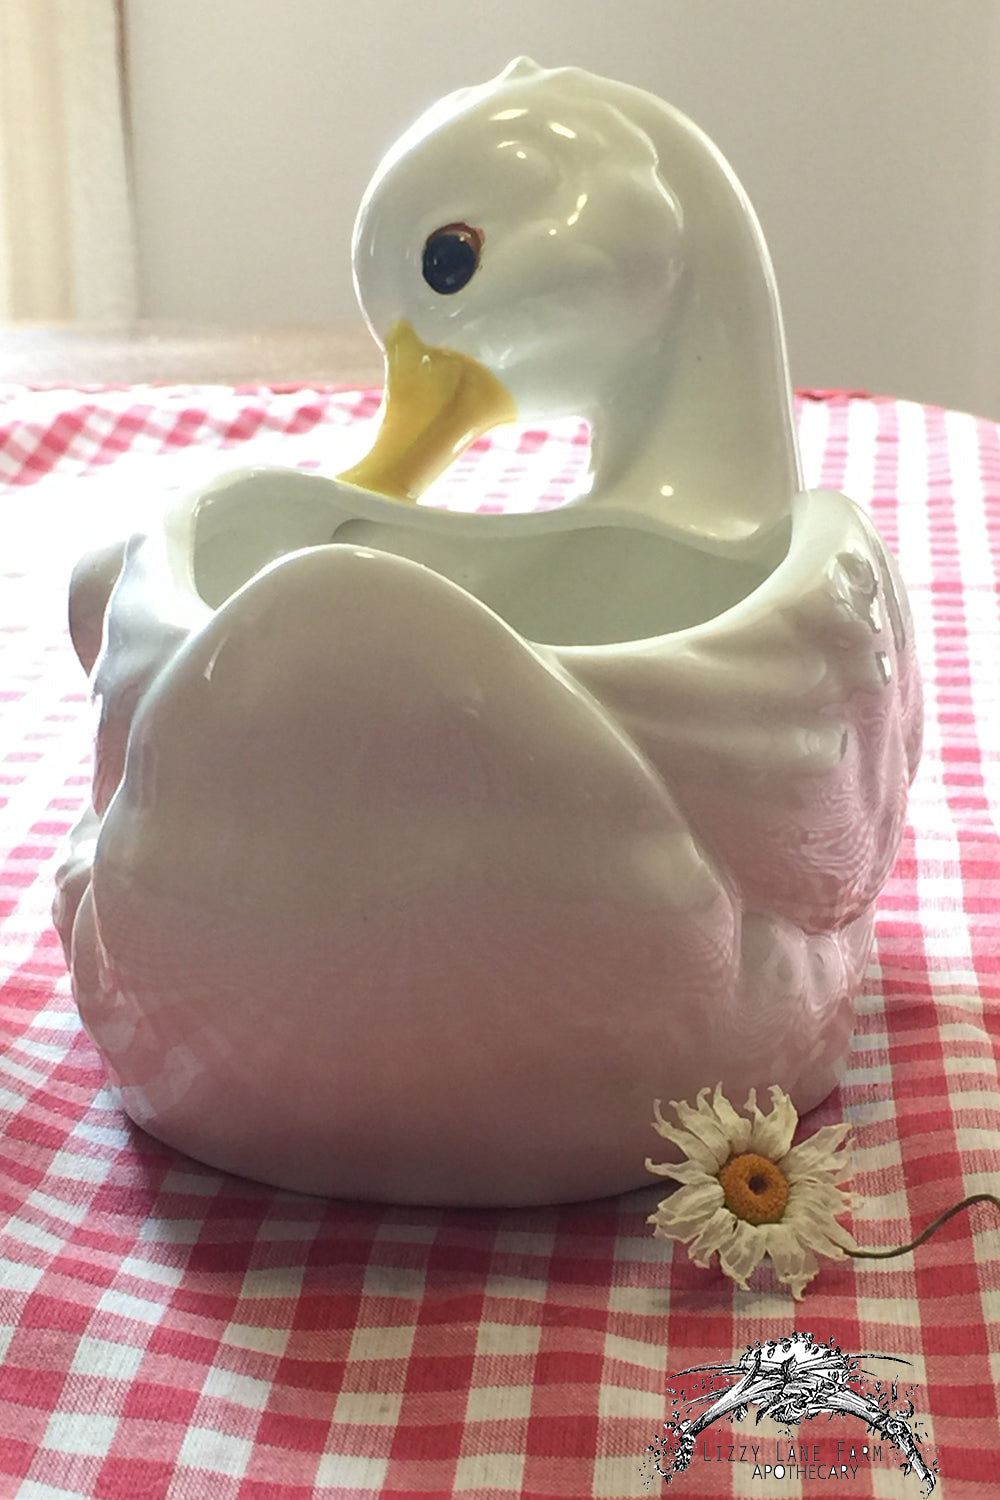 vintage flower vase, momma duck and baby